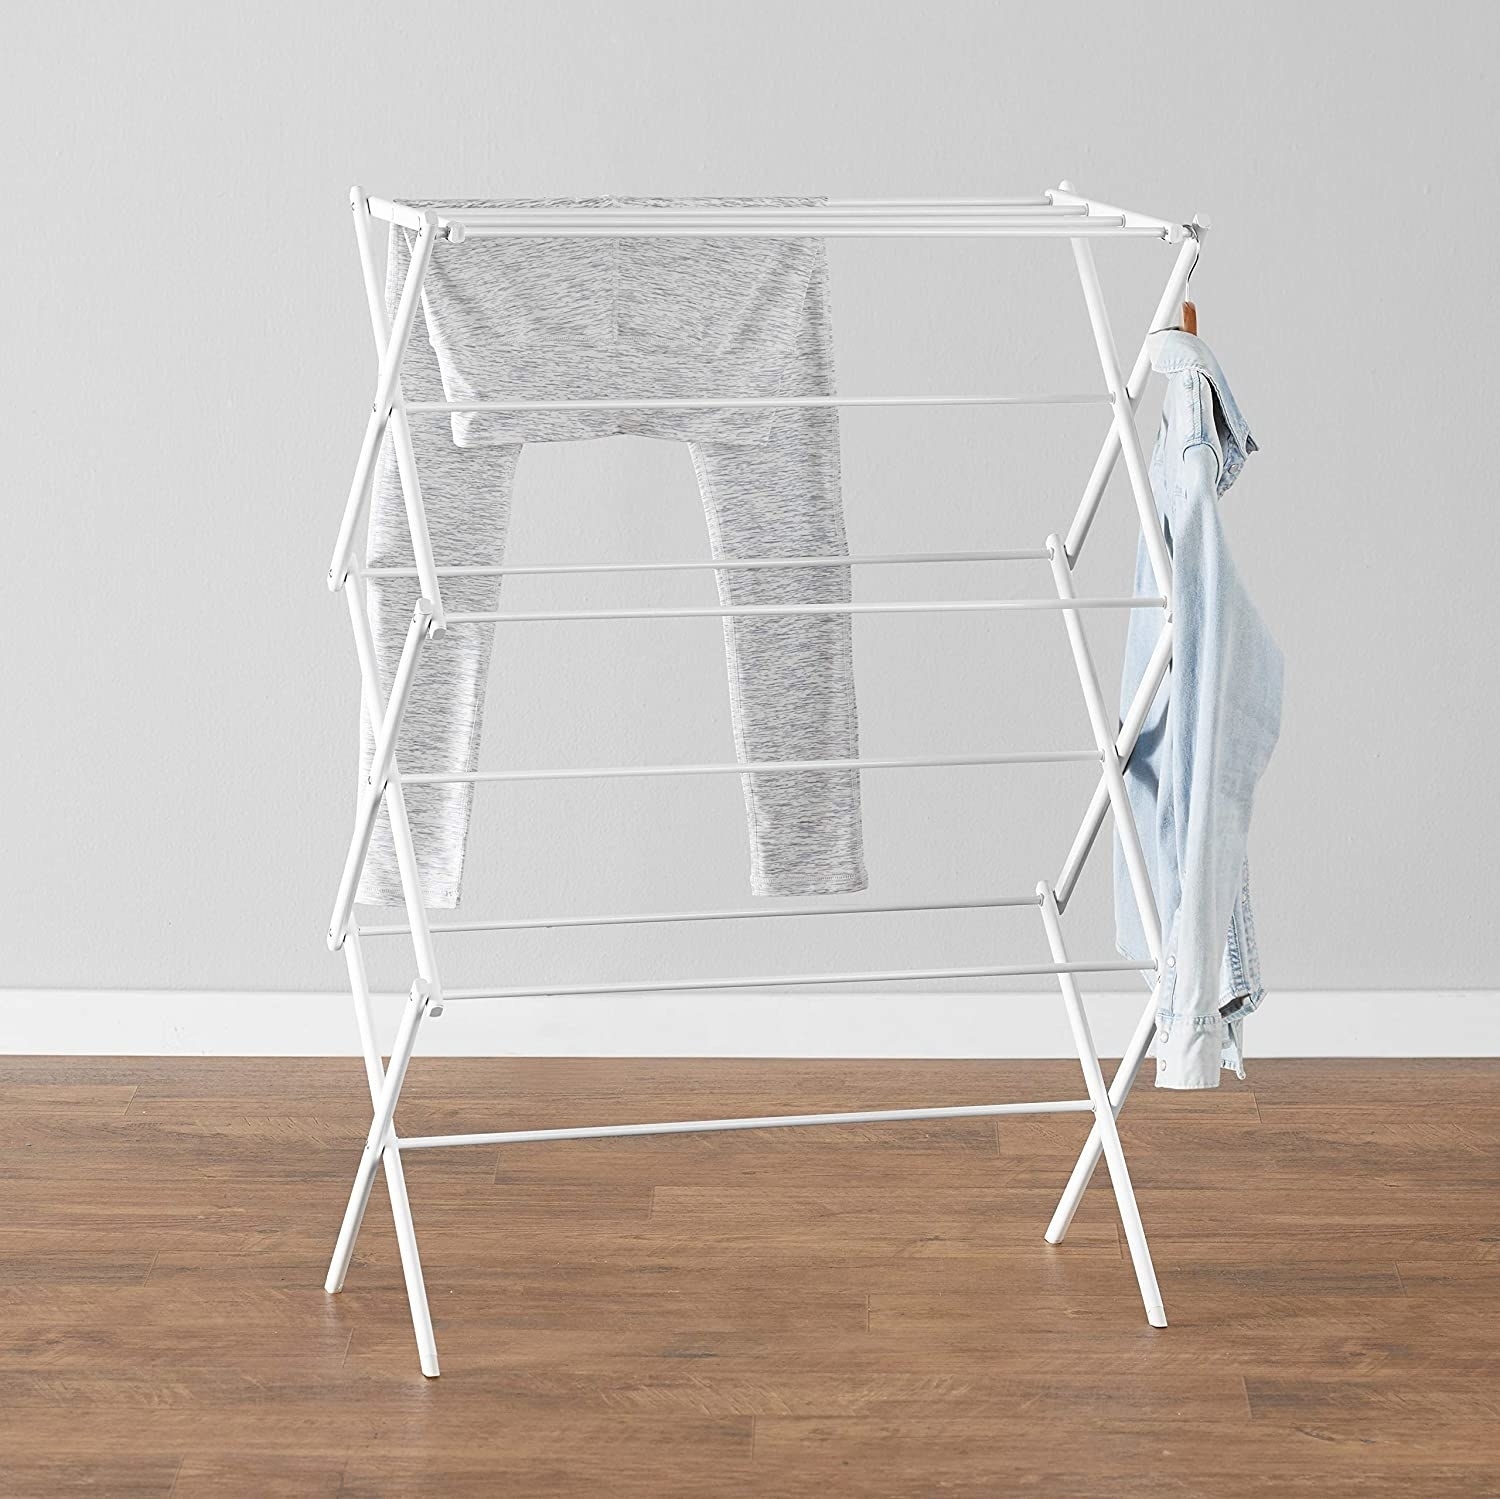 a product shot of the laundry rack in white with clothes hanging on it